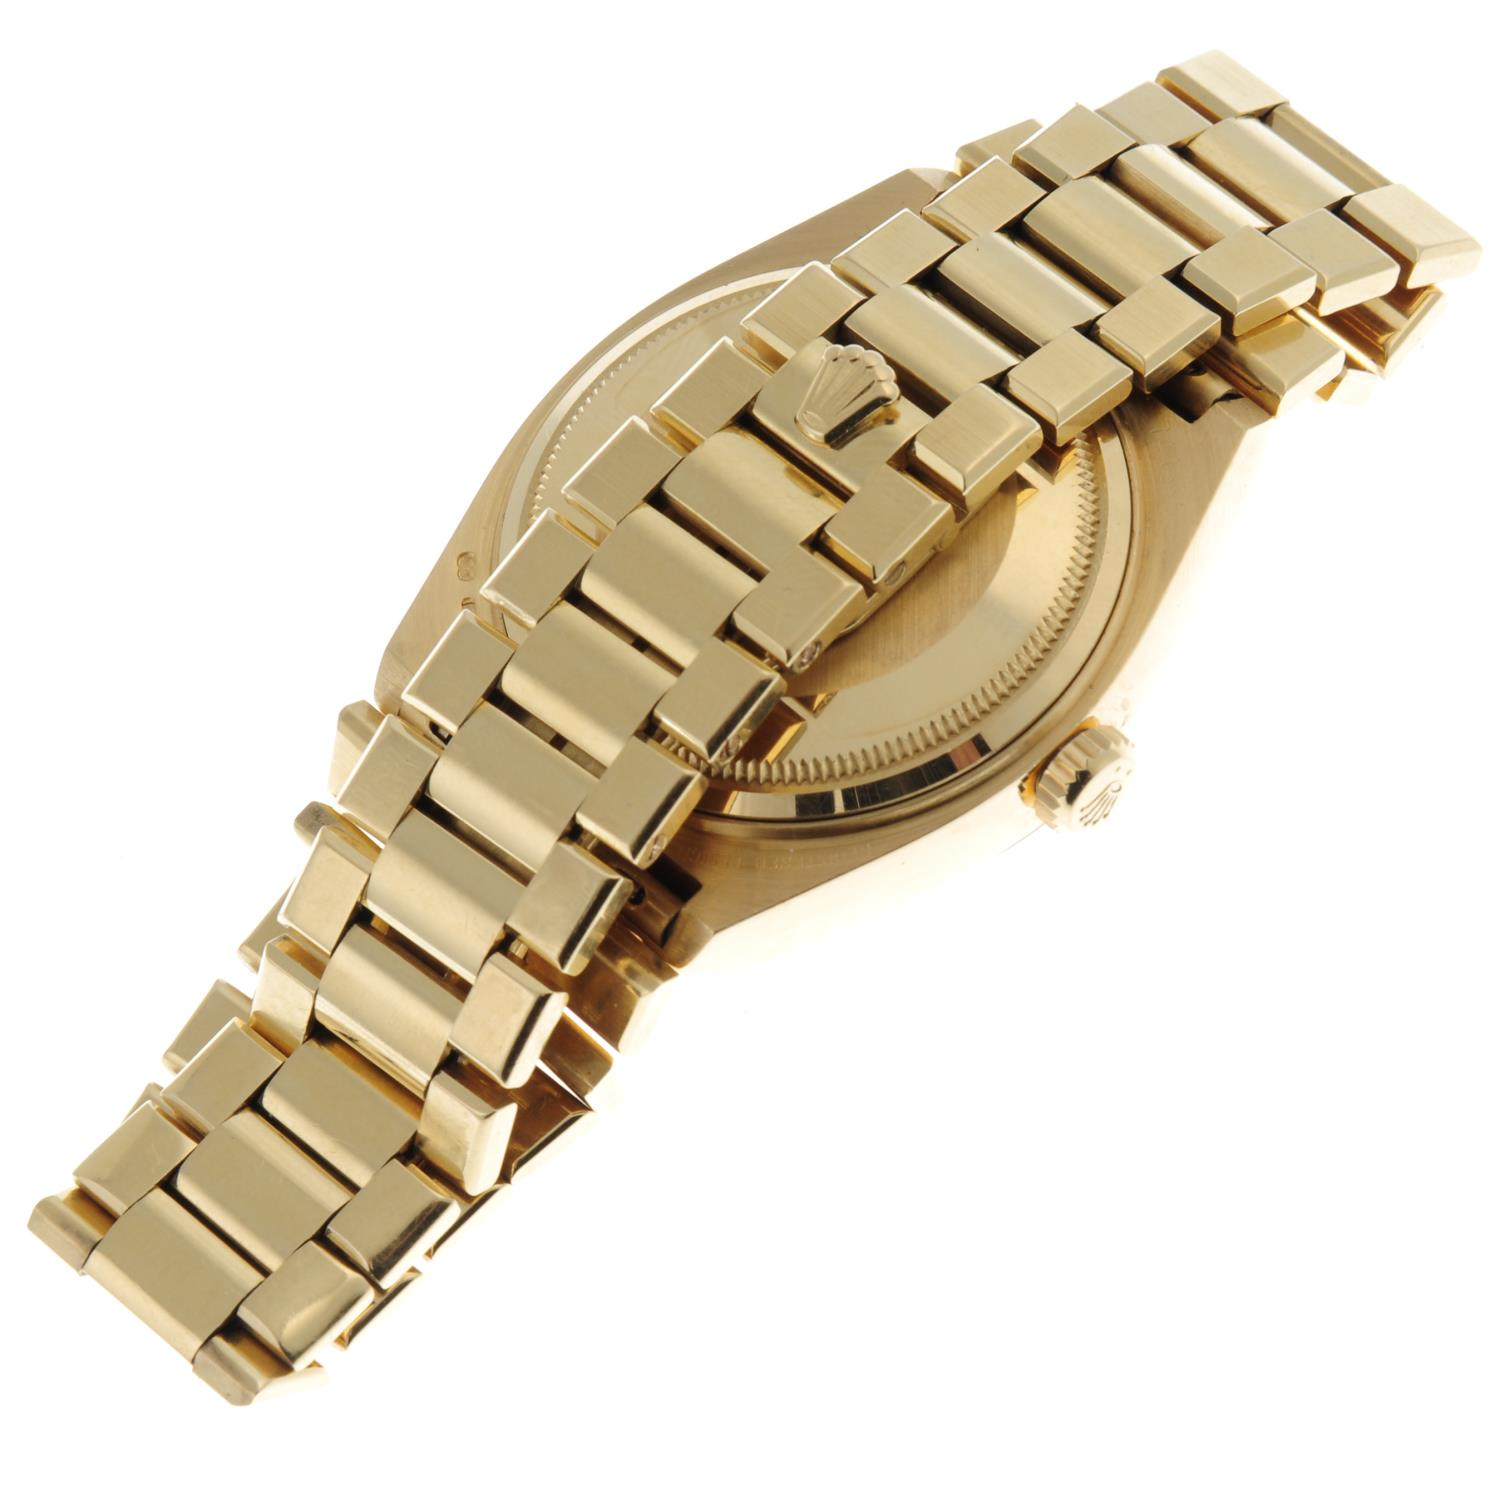 ROLEX - an Oysterquartz Day-Date bracelet watch. - Image 4 of 5